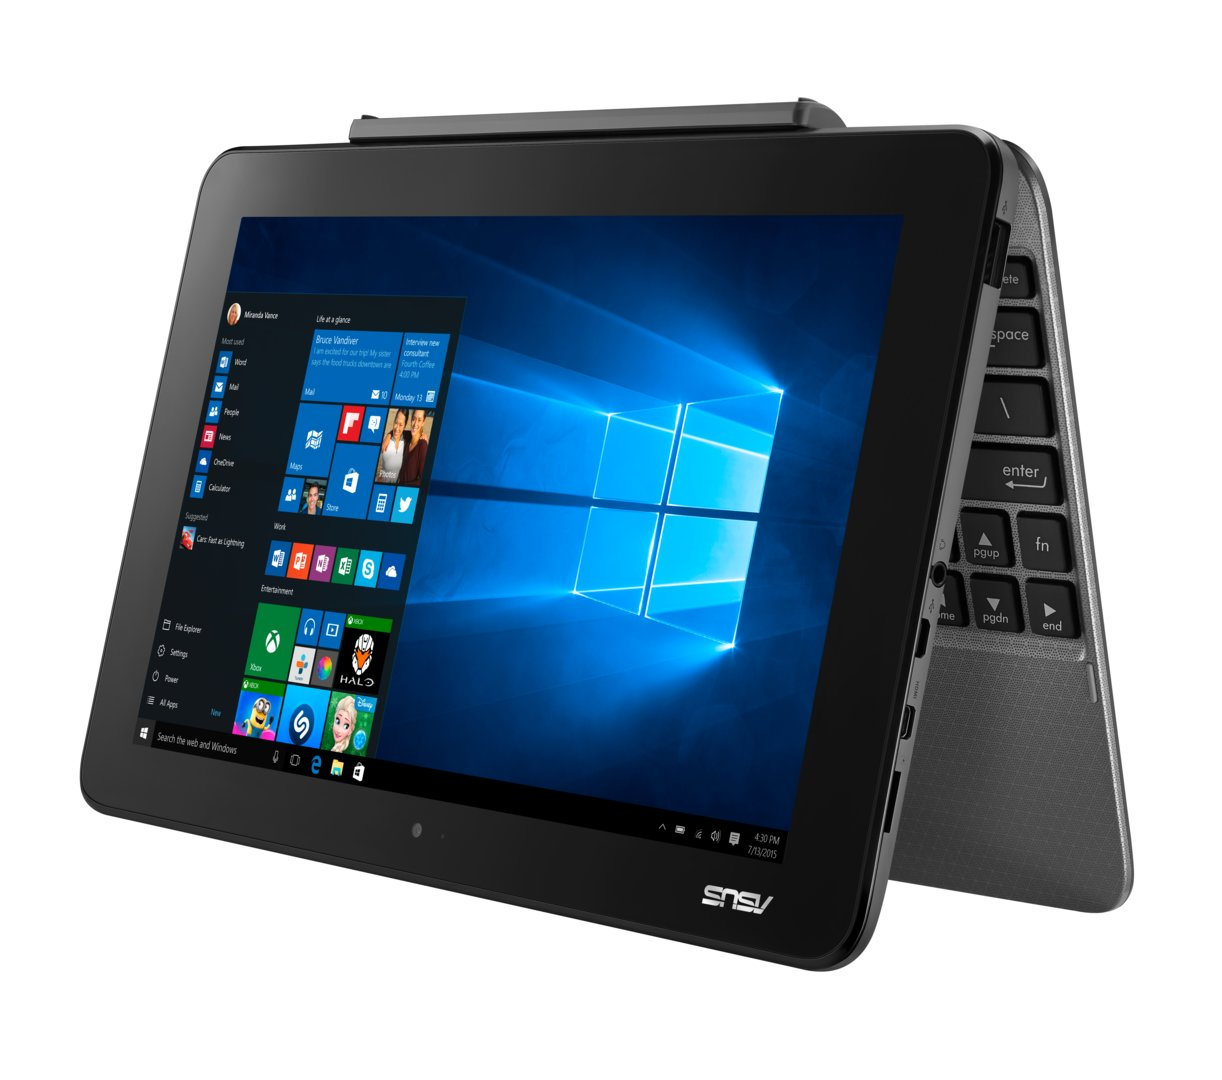 Asus Transformer Book T101 in Quartz Gray